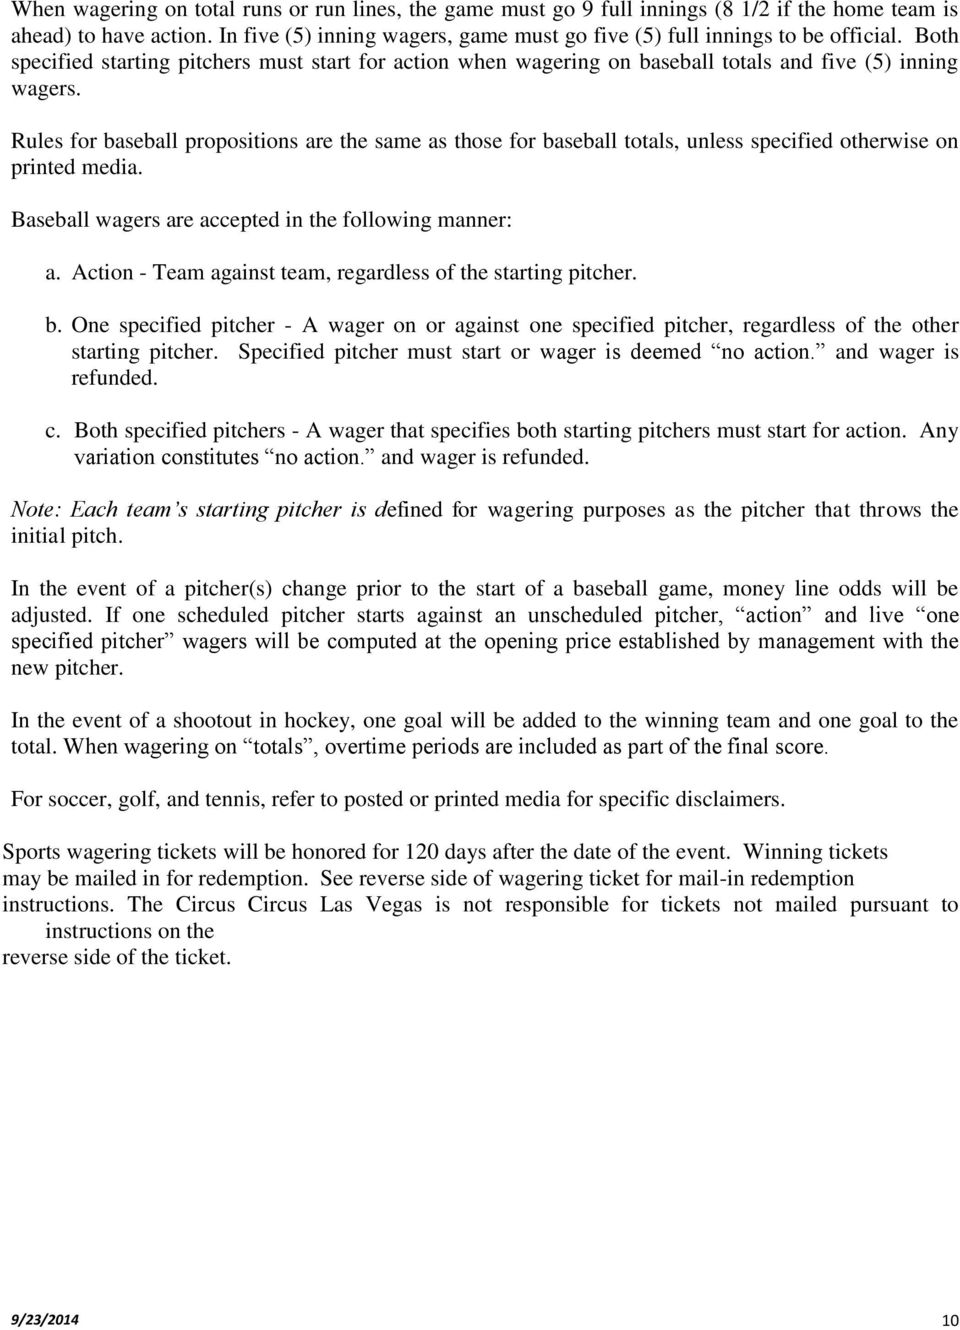 Hkjc betting rules for blackjack west ham v norwich betting preview